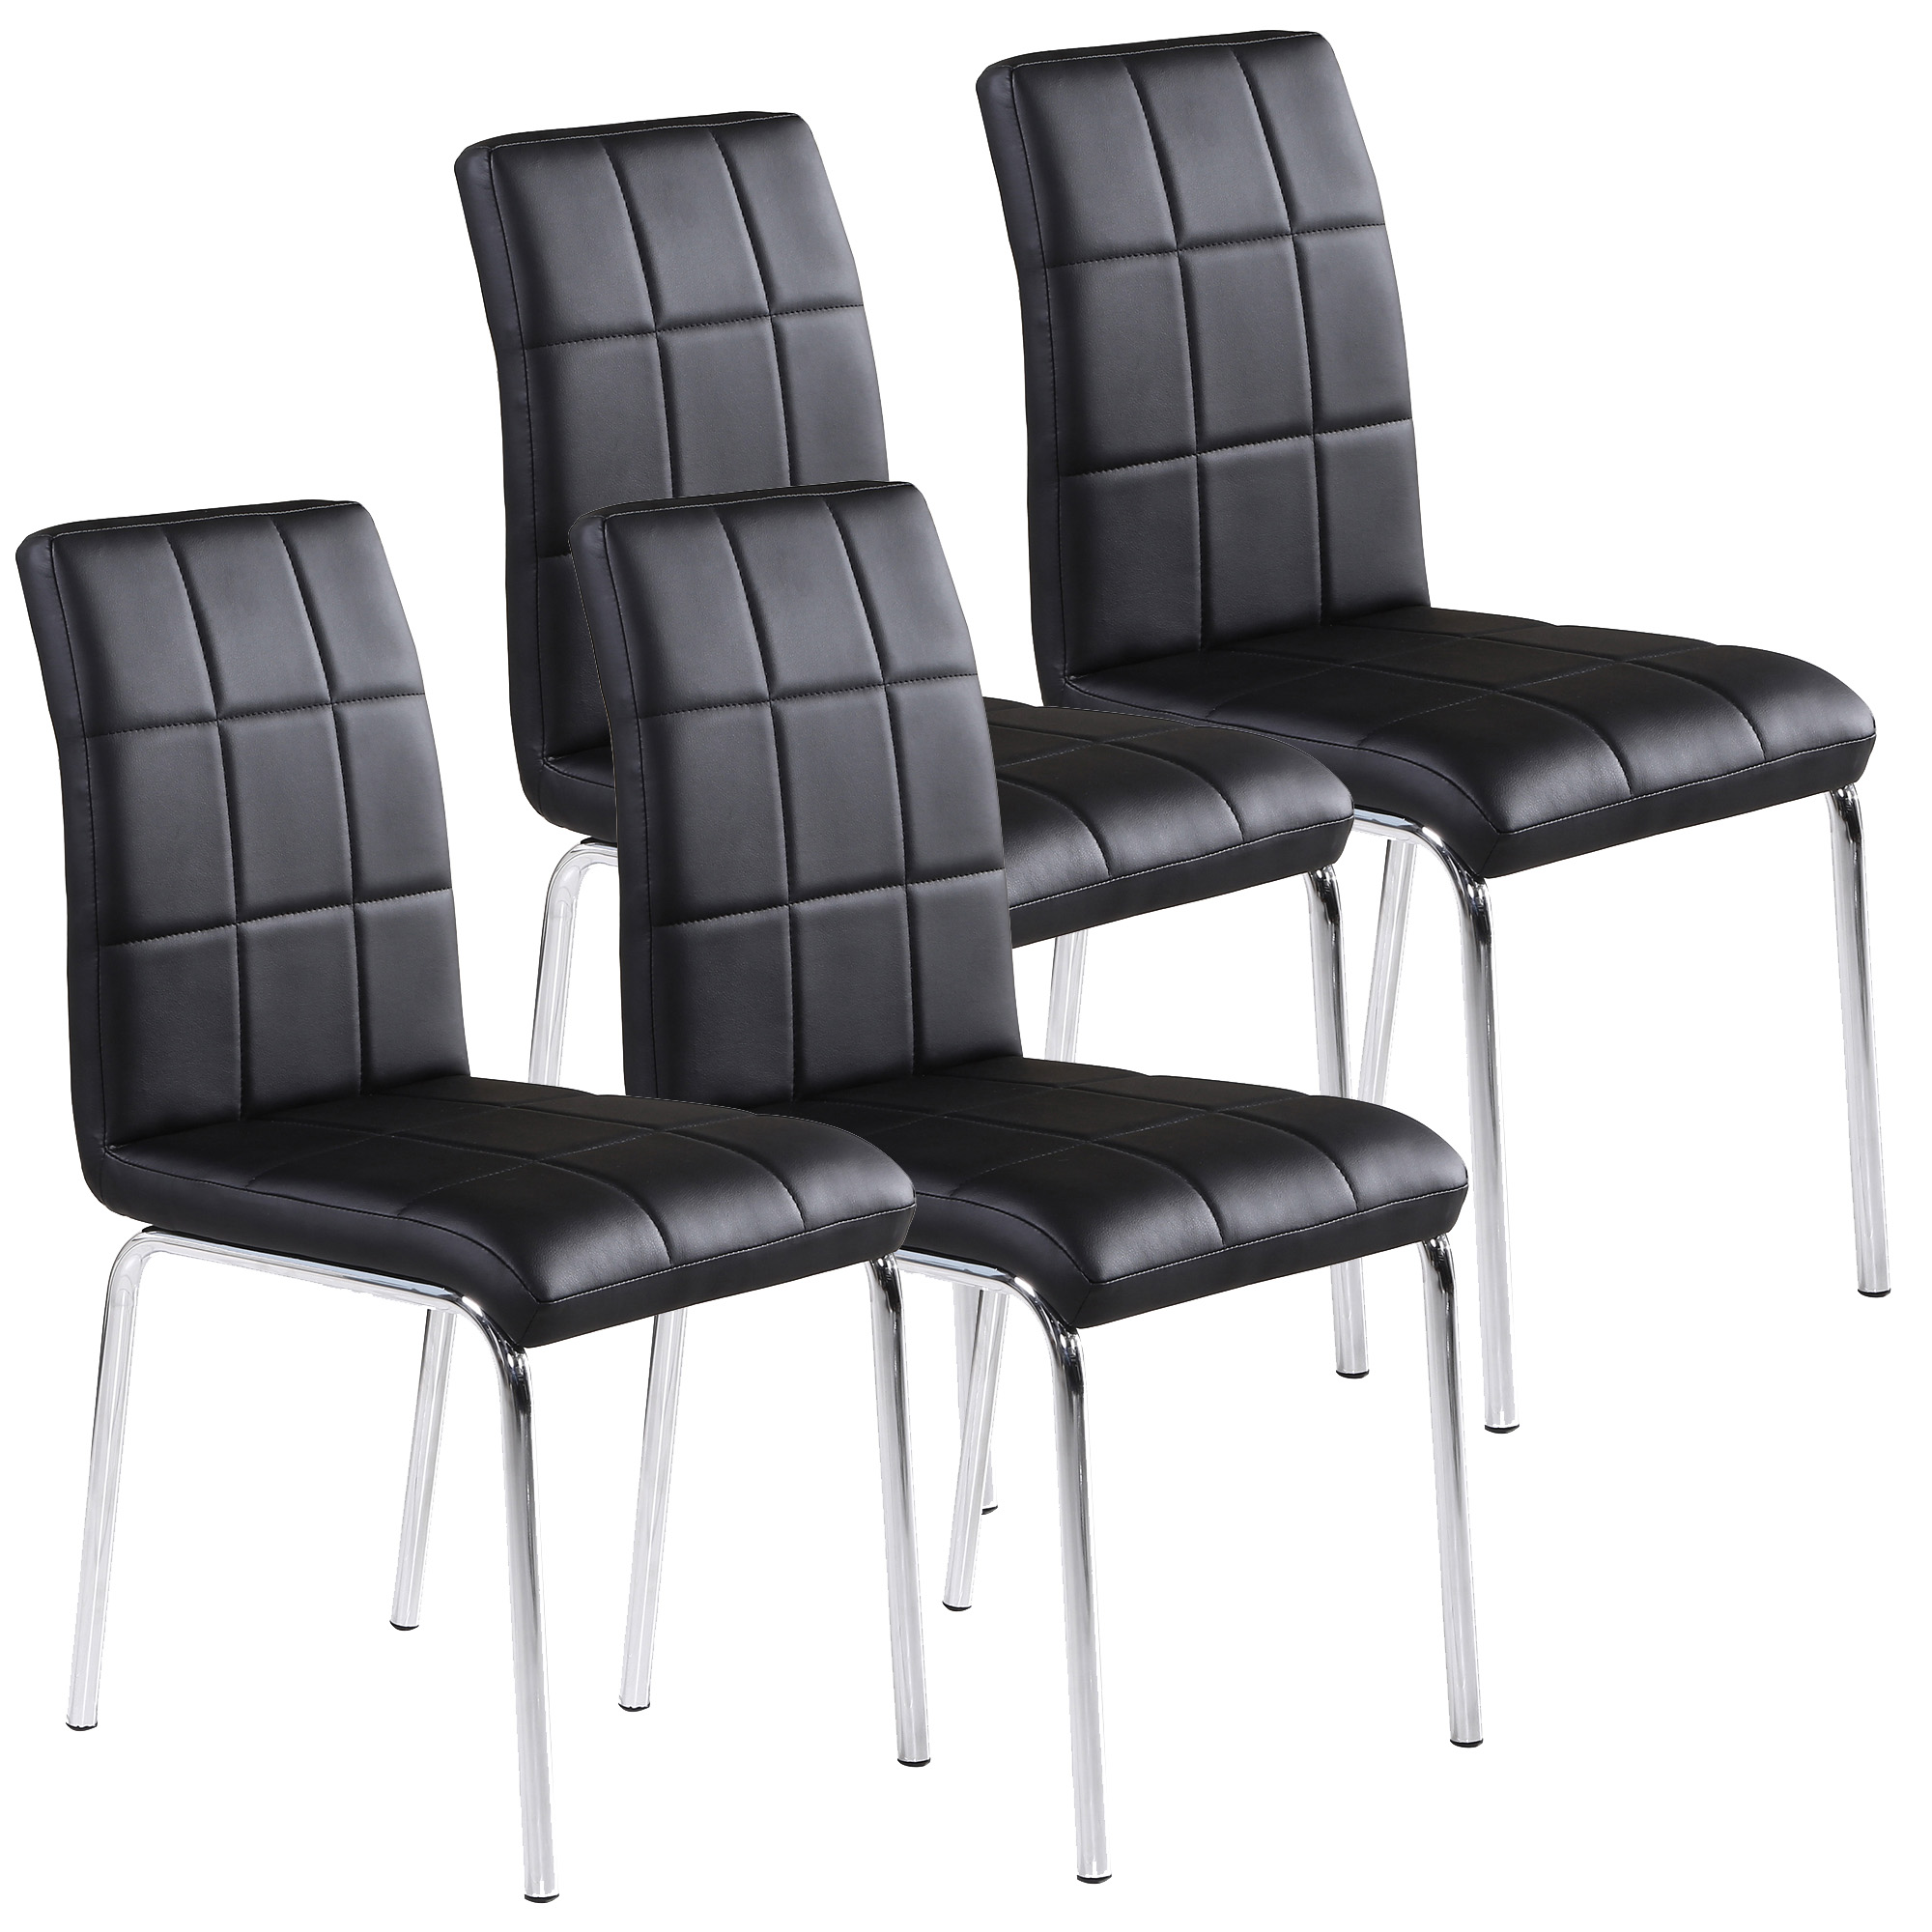 leather chrome chair navy blue wooden rocking faux side black set of 4 walmart com